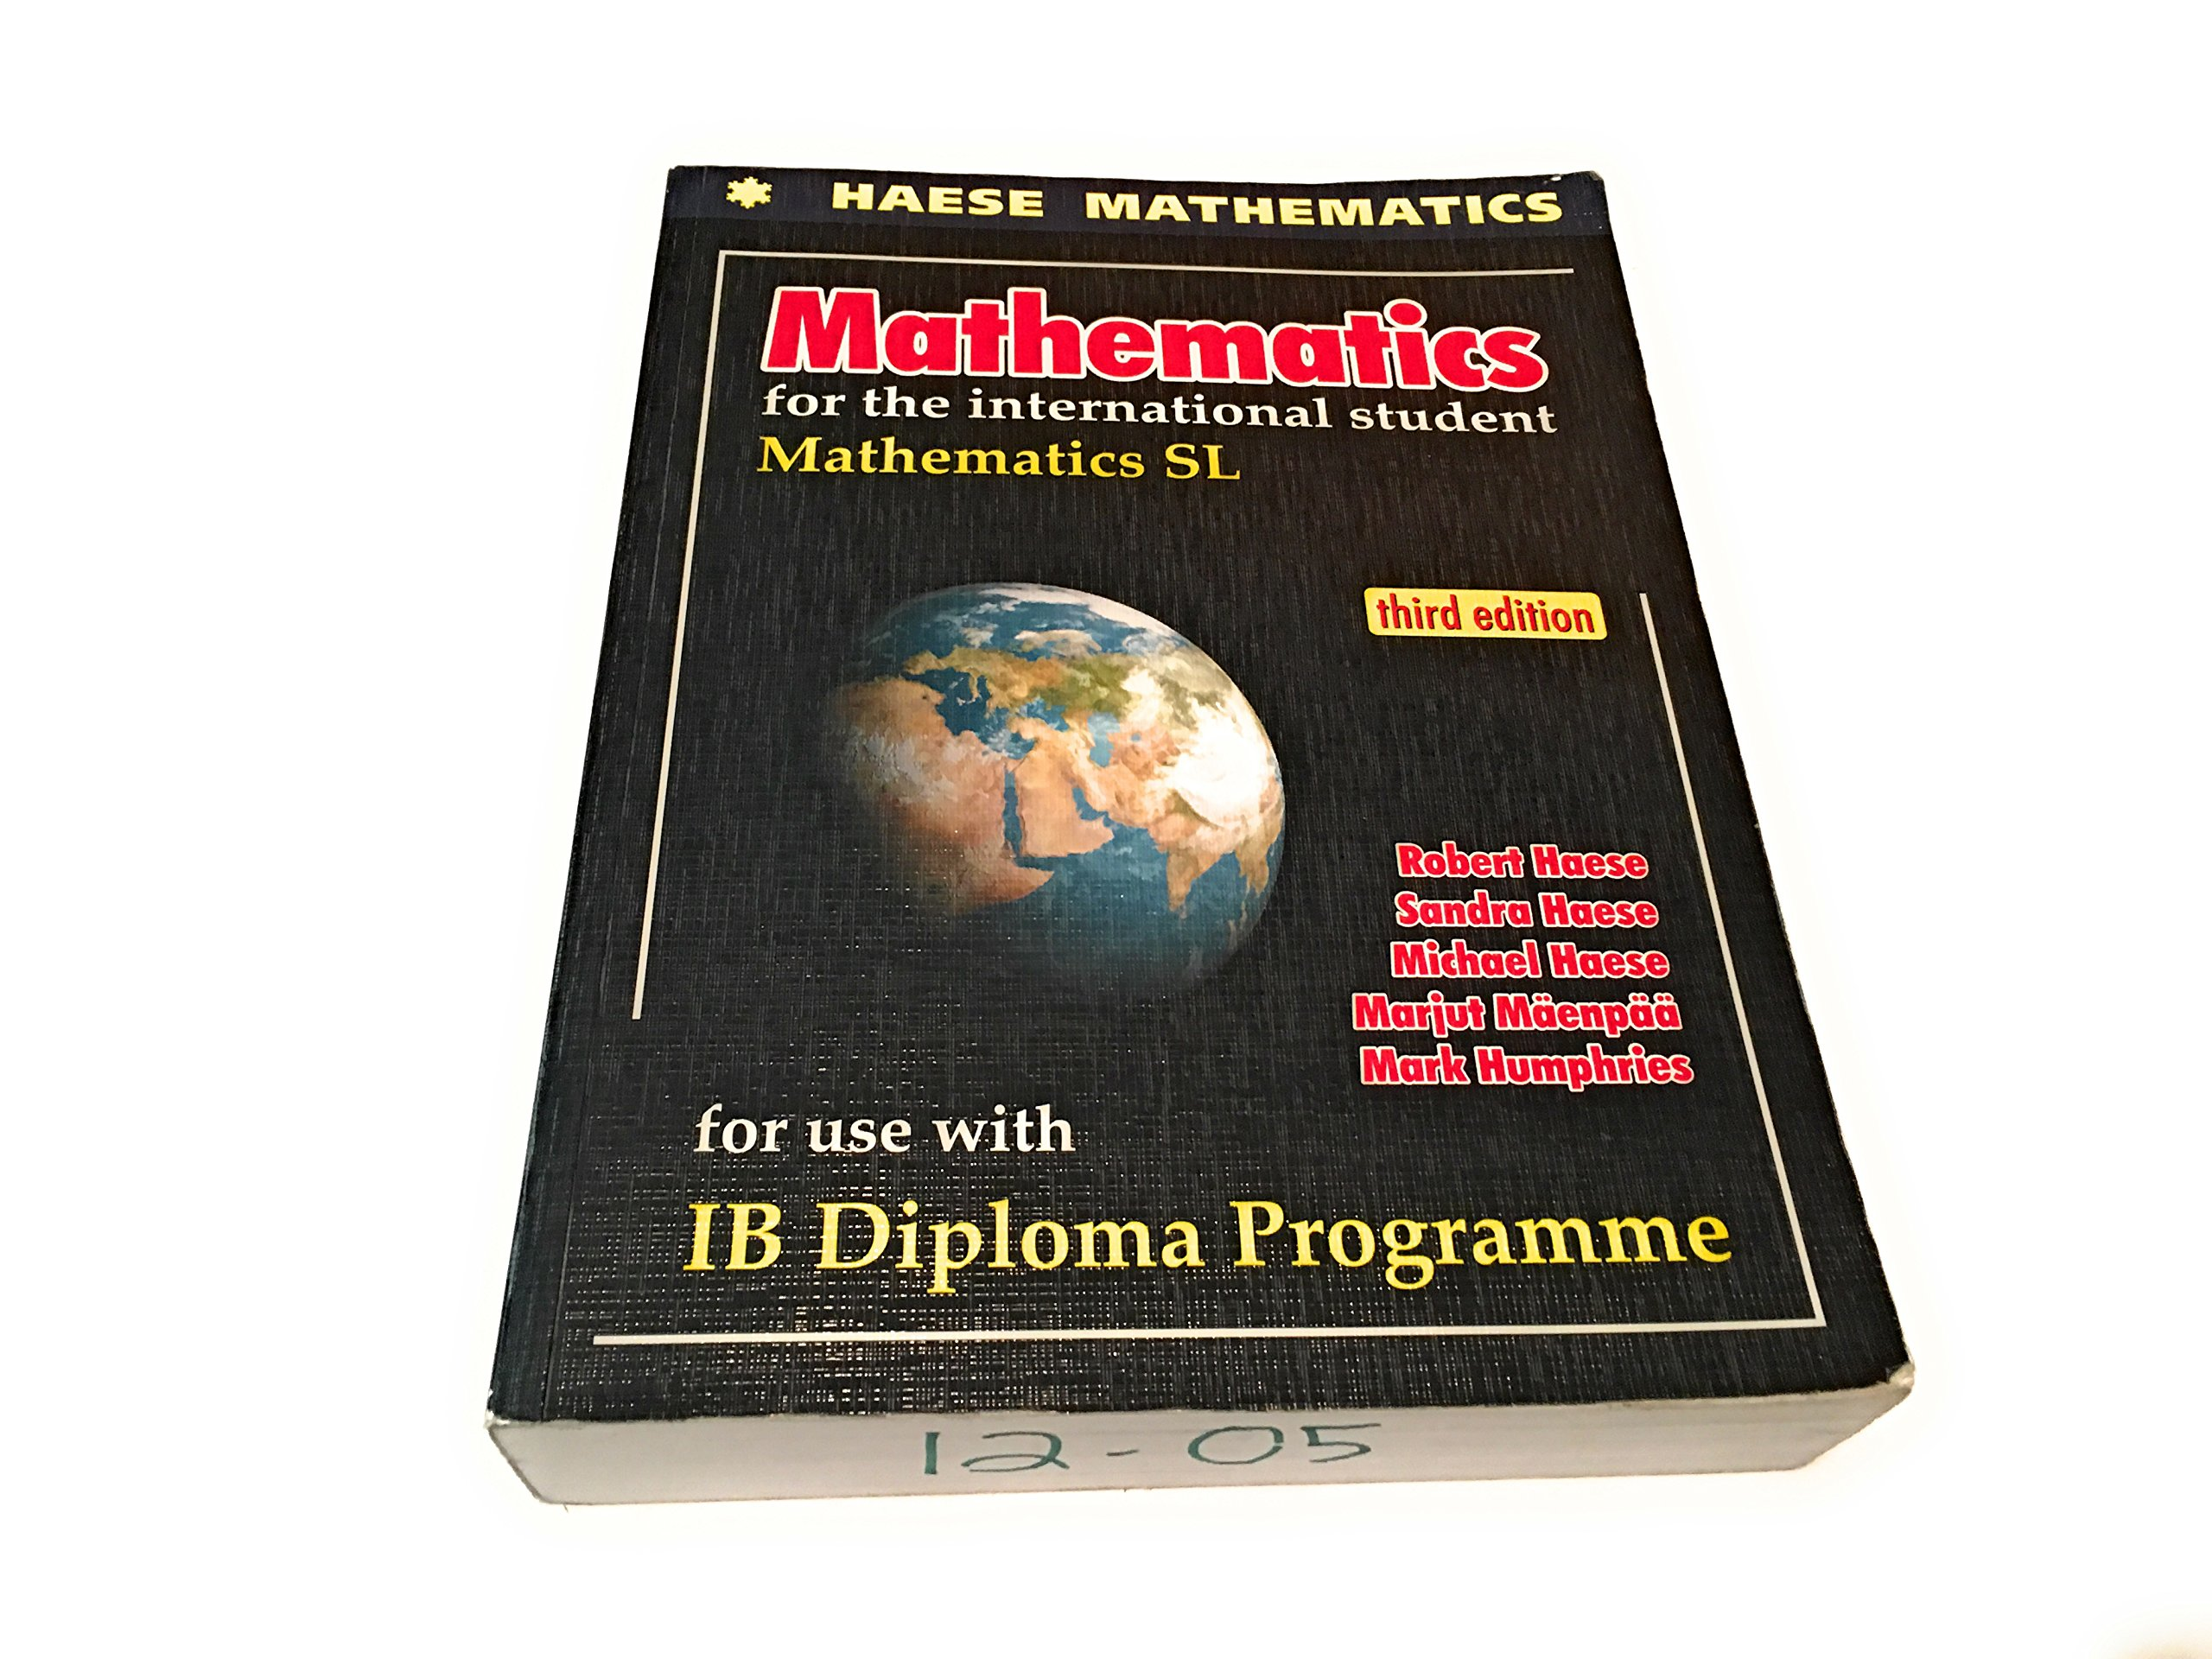 Mathematics for the international student Mathematics SL